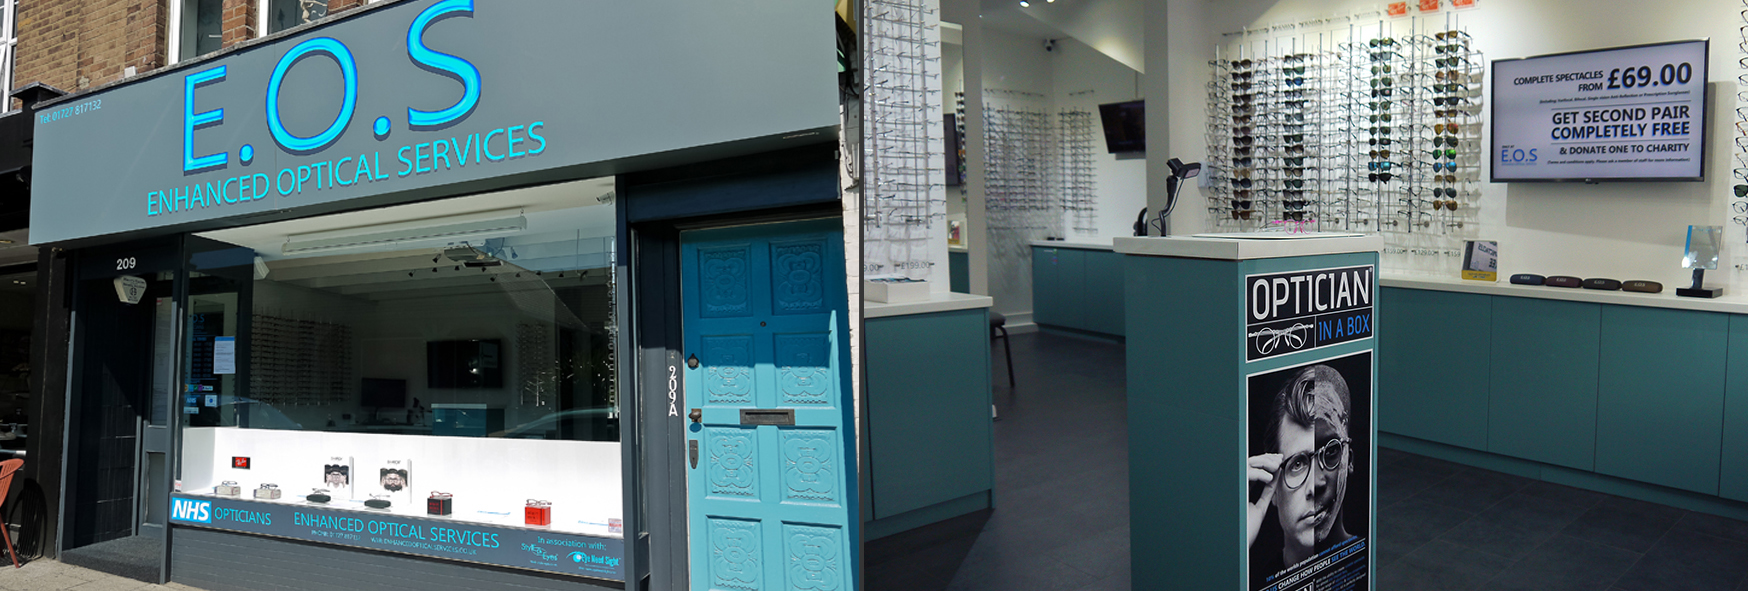 EOS - Enhanced Optical Services - St Albans Optician